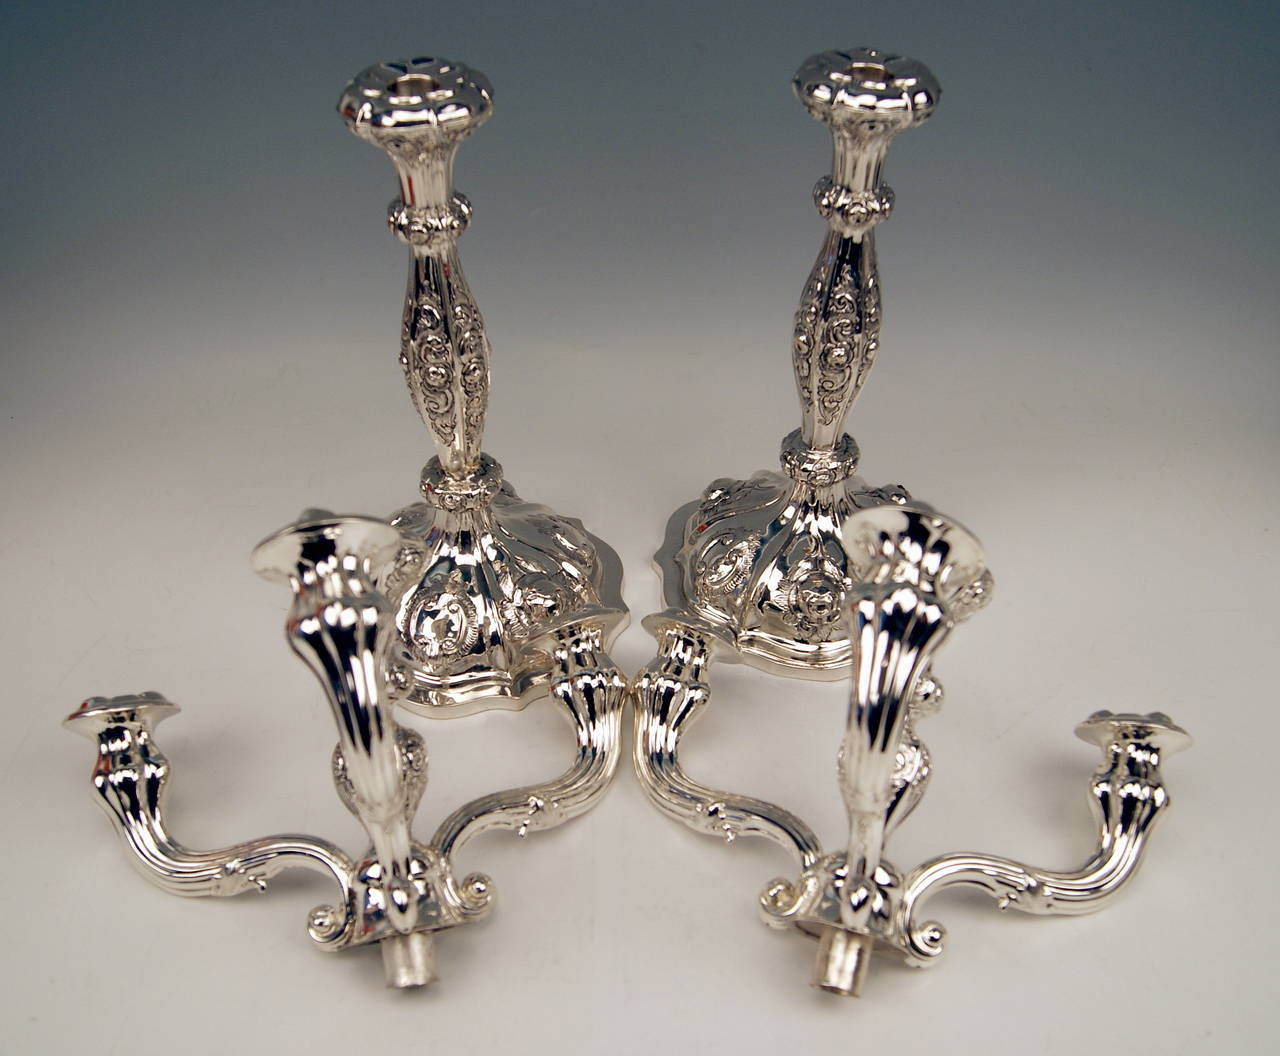 Austrian Silver Viennese Two Biedermeier Candlesticks by Albert Kattner dated 1857 For Sale